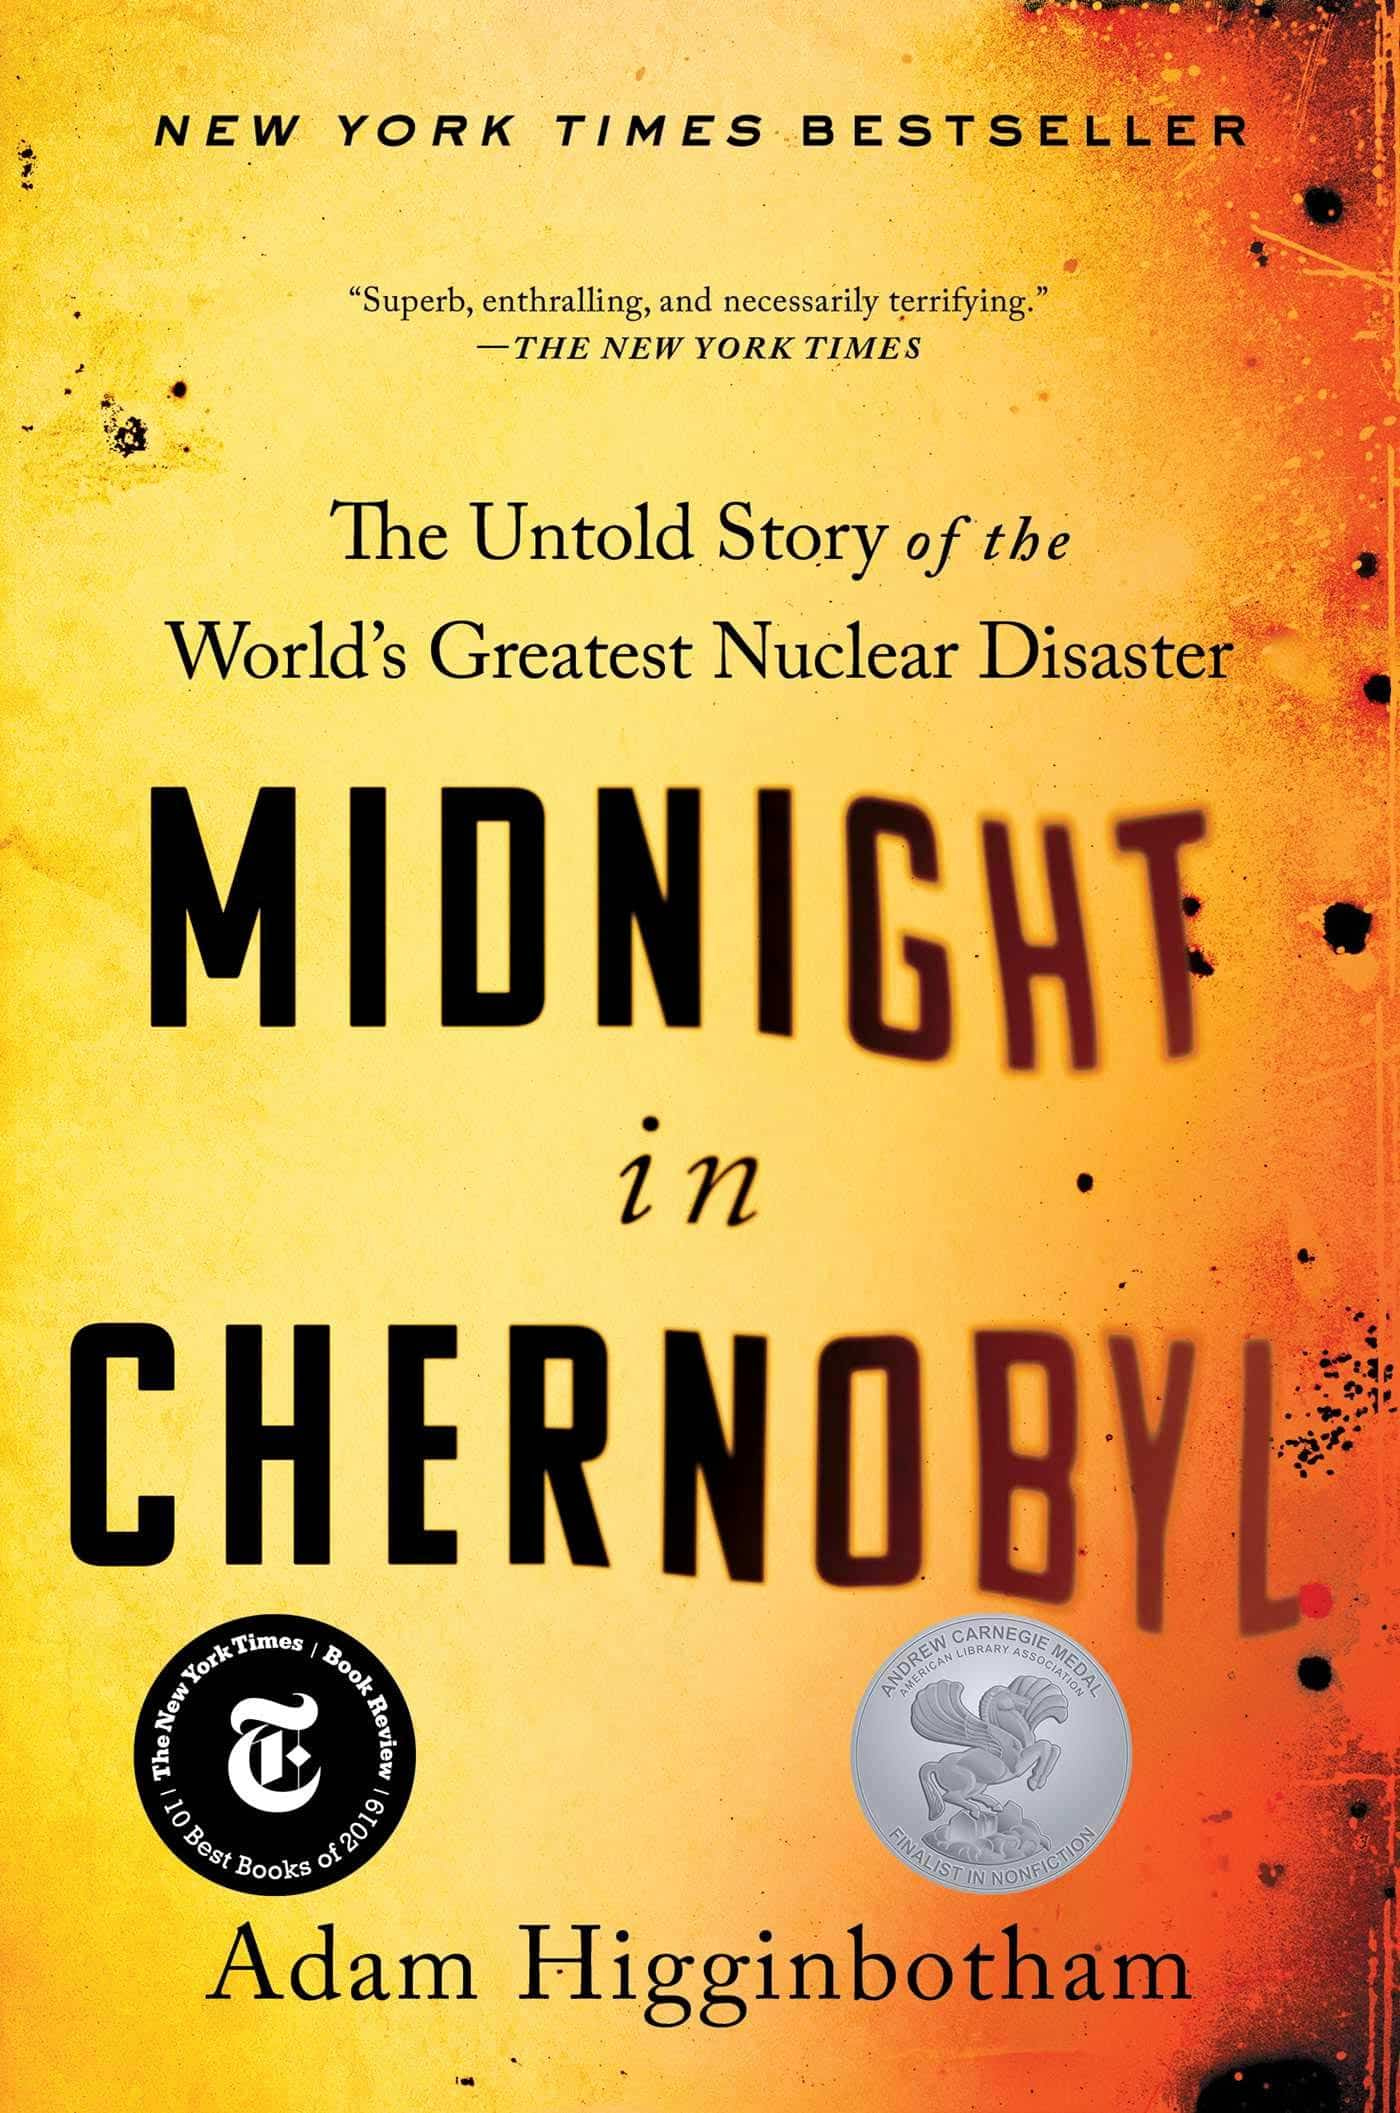 The cover of Midnight in Chernobyl